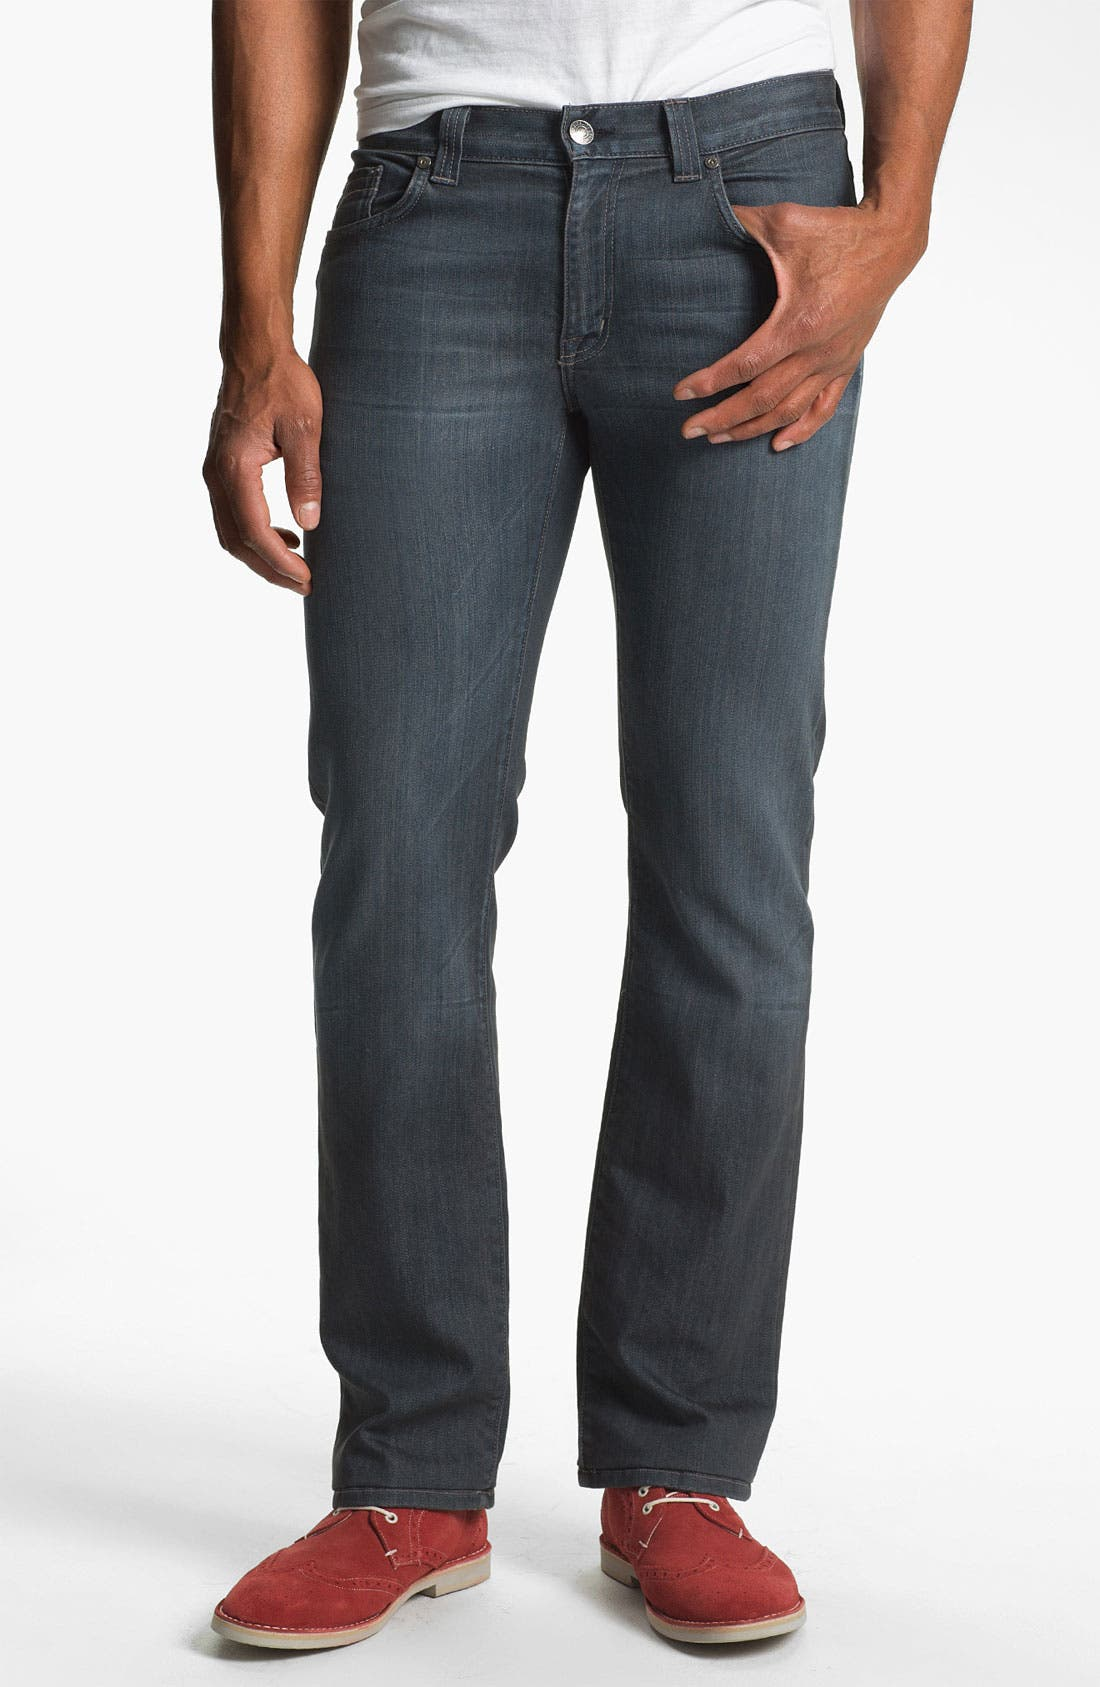 Alternate Image 1 Selected - Fidelity Denim '5011' Straight Leg Jeans (Diego Steel)